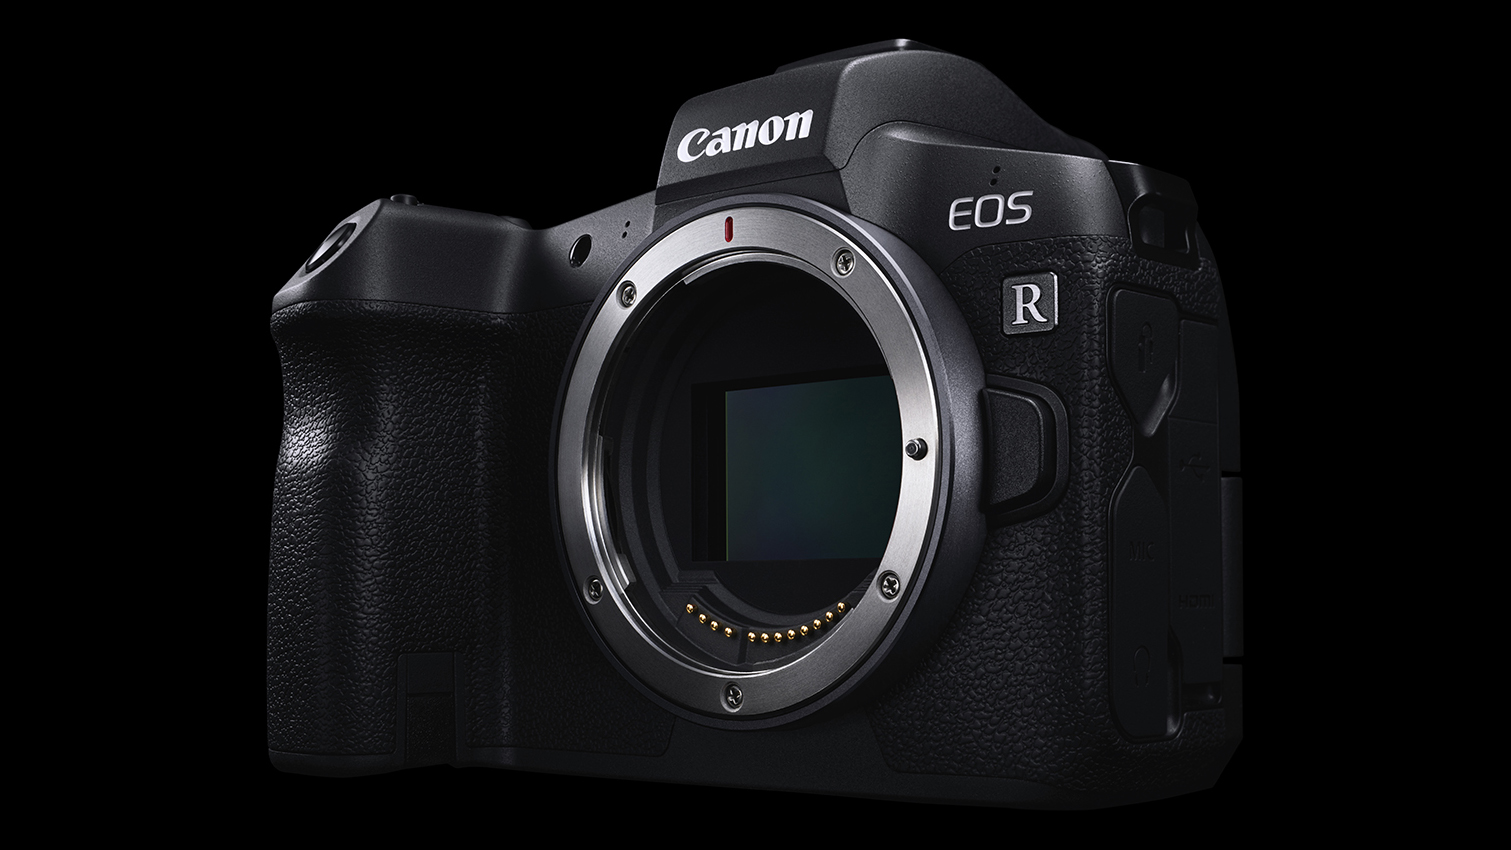 Canon exec confirms 8K EOS R mirrorless camera is in development